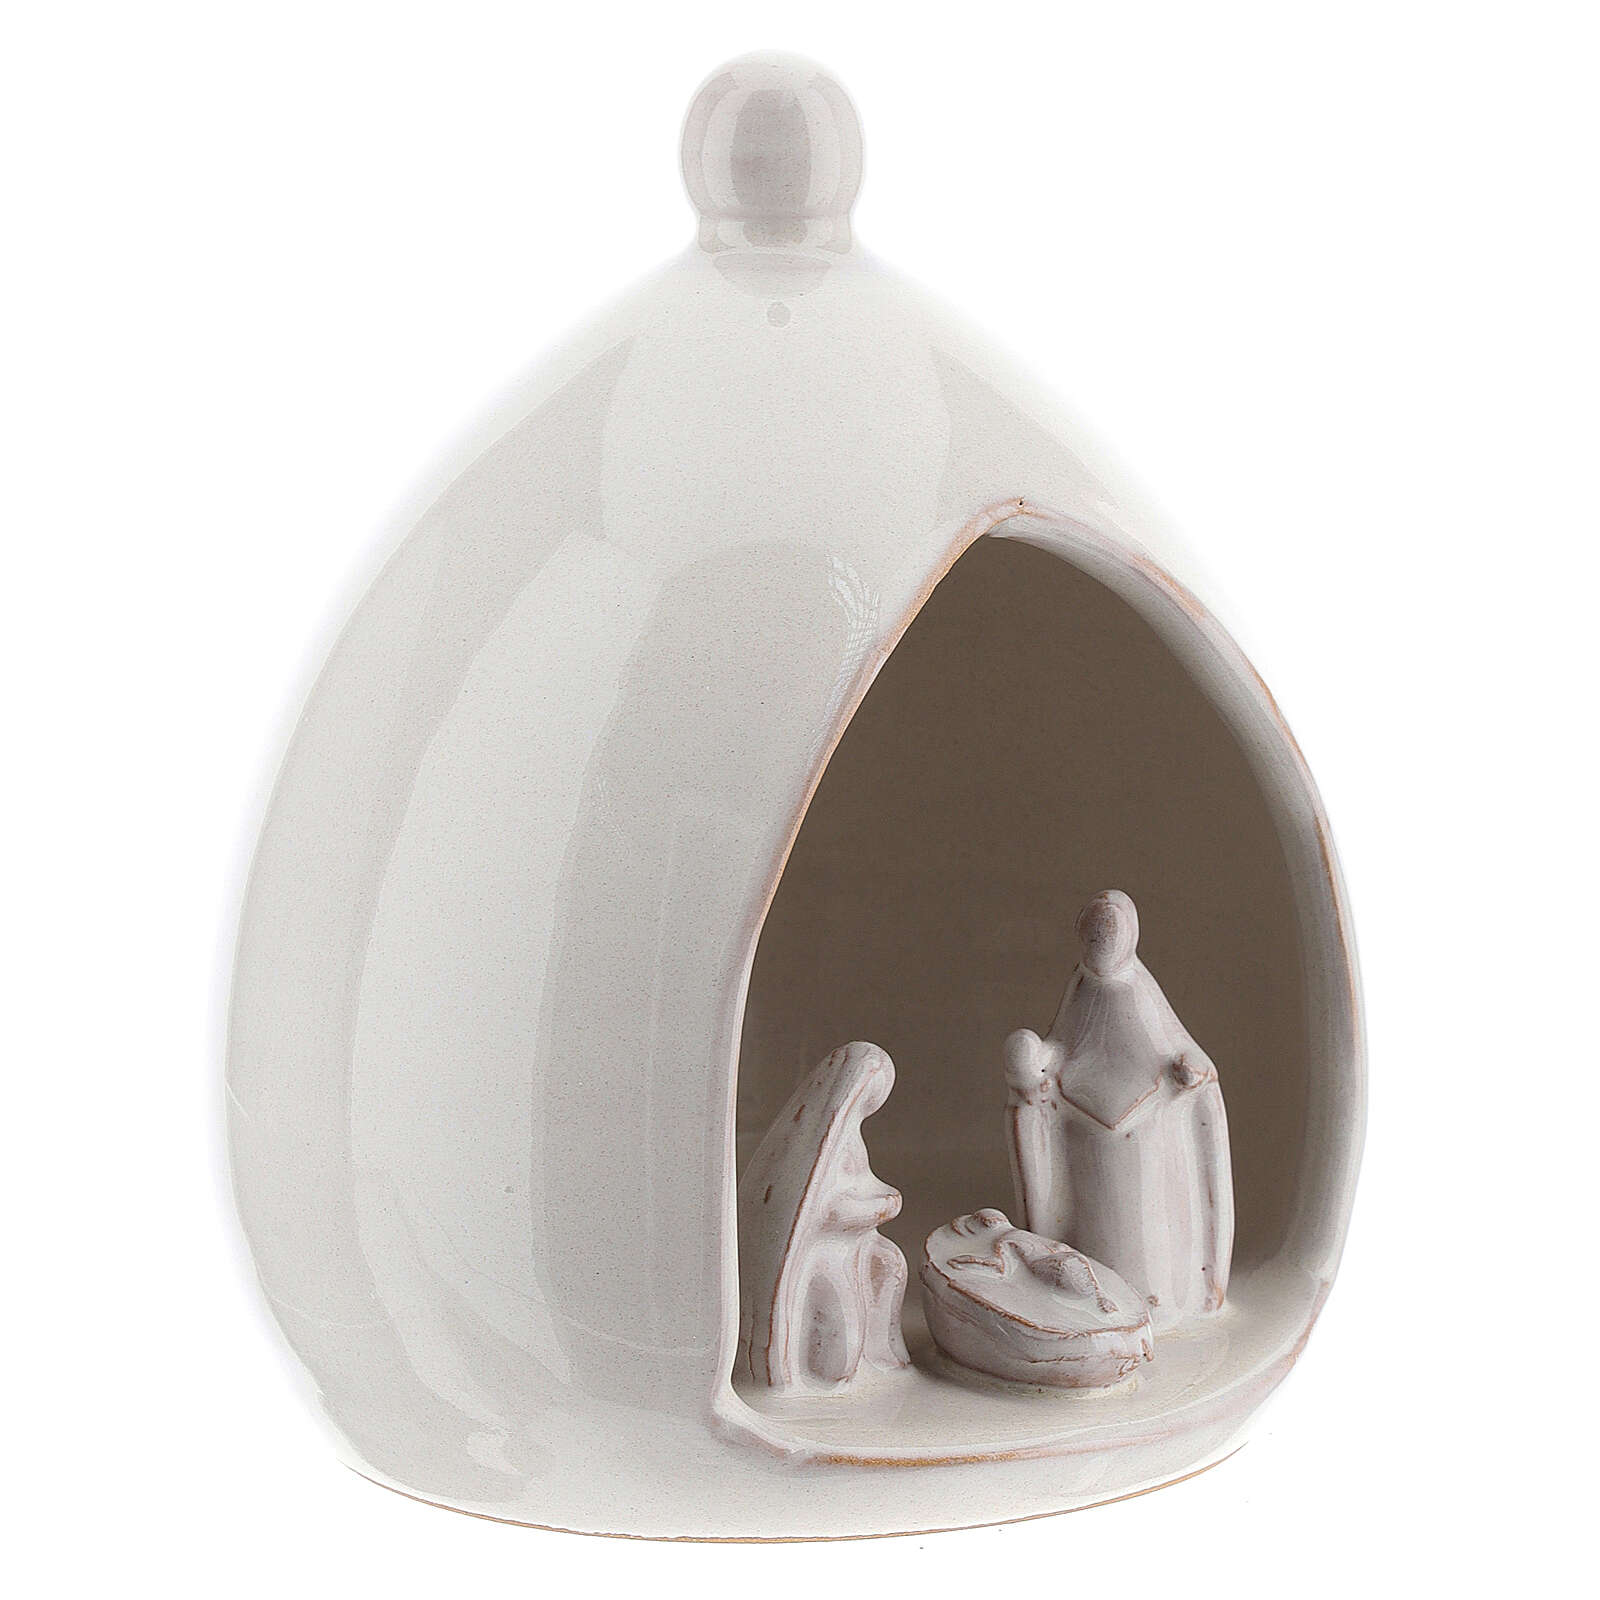 Drop stable with white Holy Family set 15 cm Deruta terracotta 4